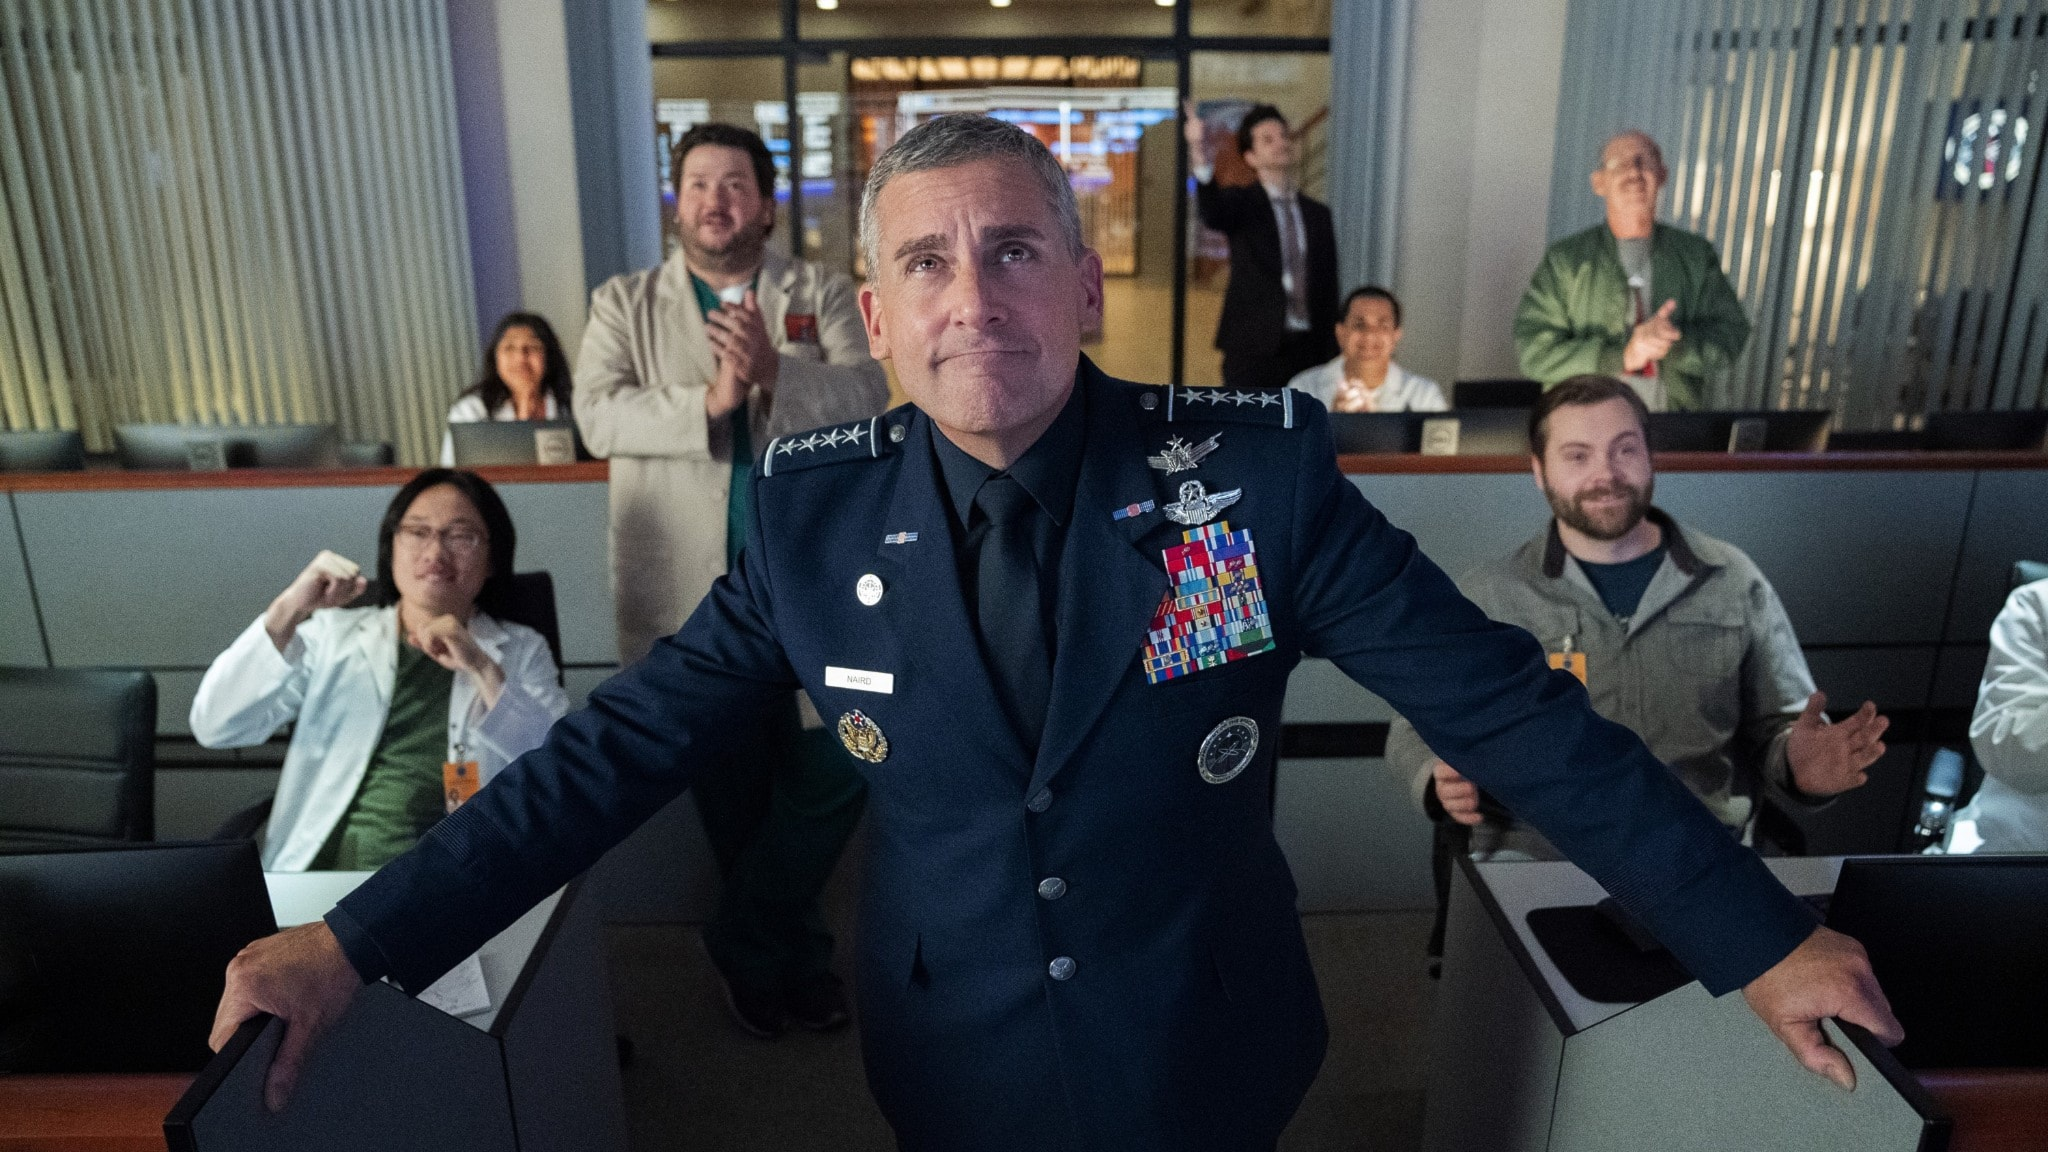 Steve Carell i TV-serien Space force.